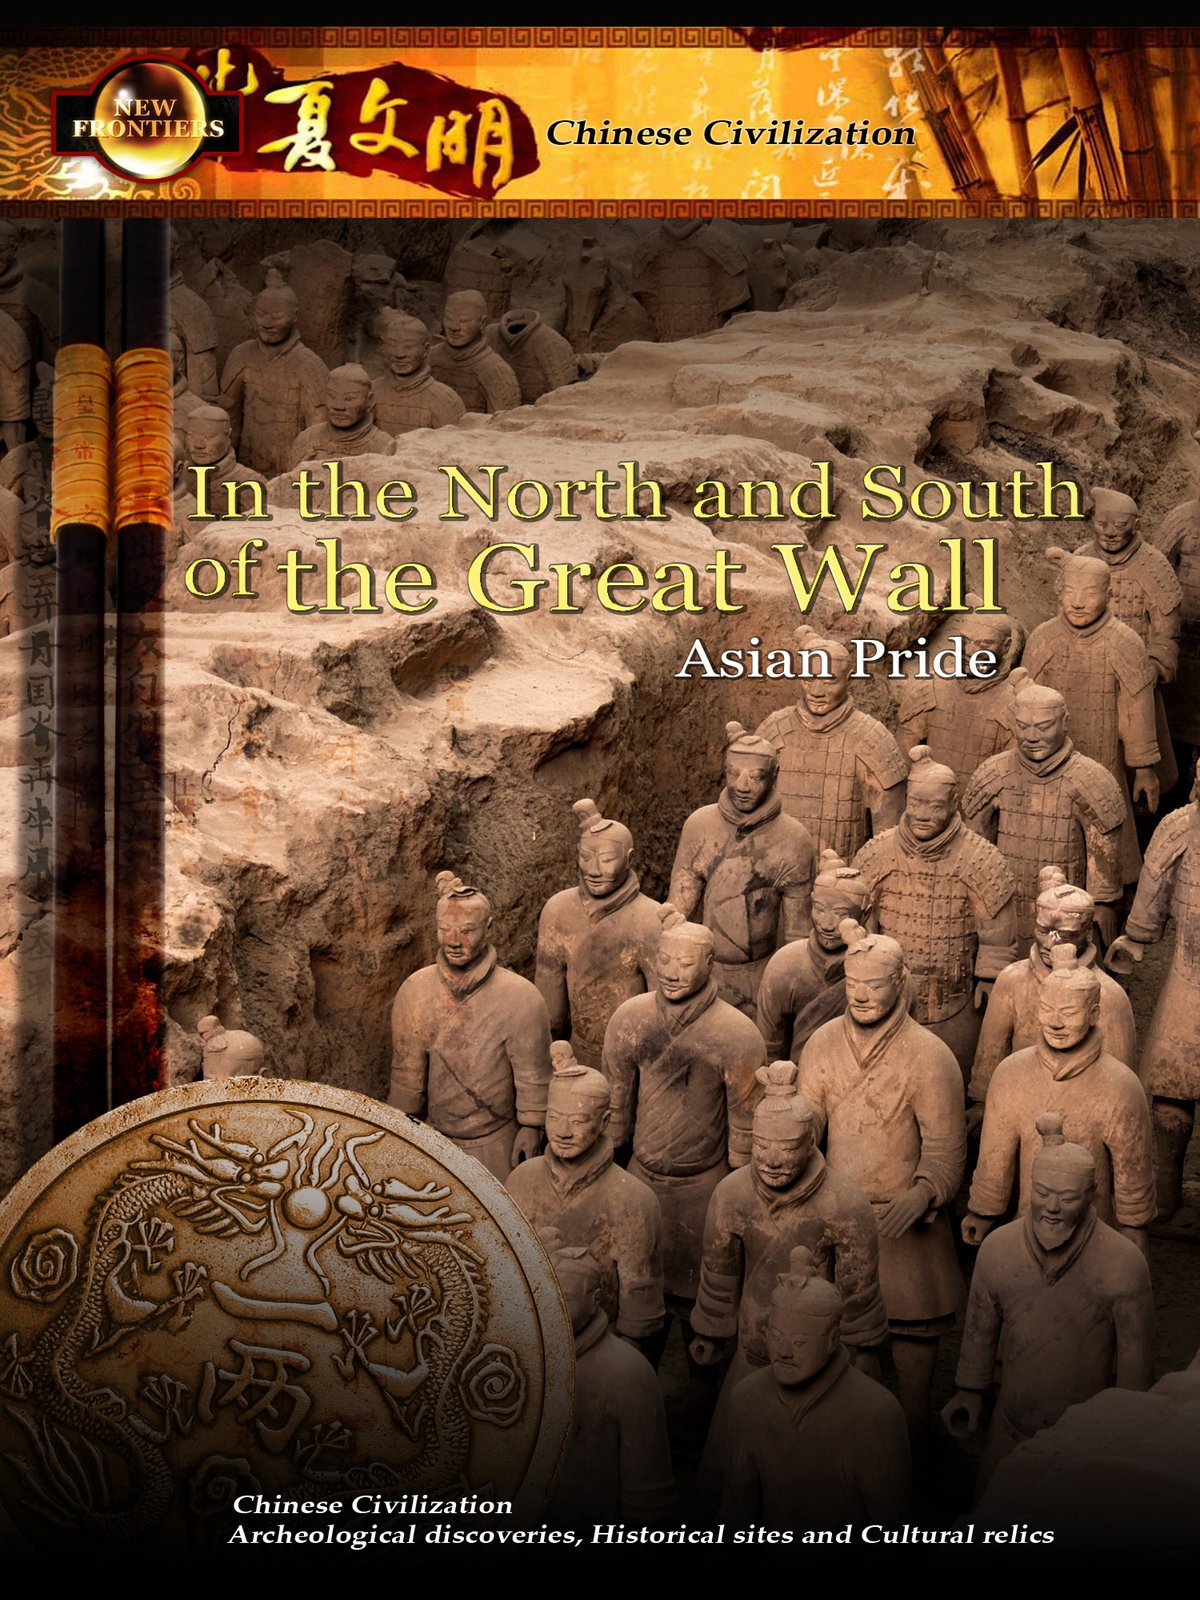 Amazon.com: Watch Chinese Civilization - In the North and South of the  Great Wall Asian Pride | Prime Video